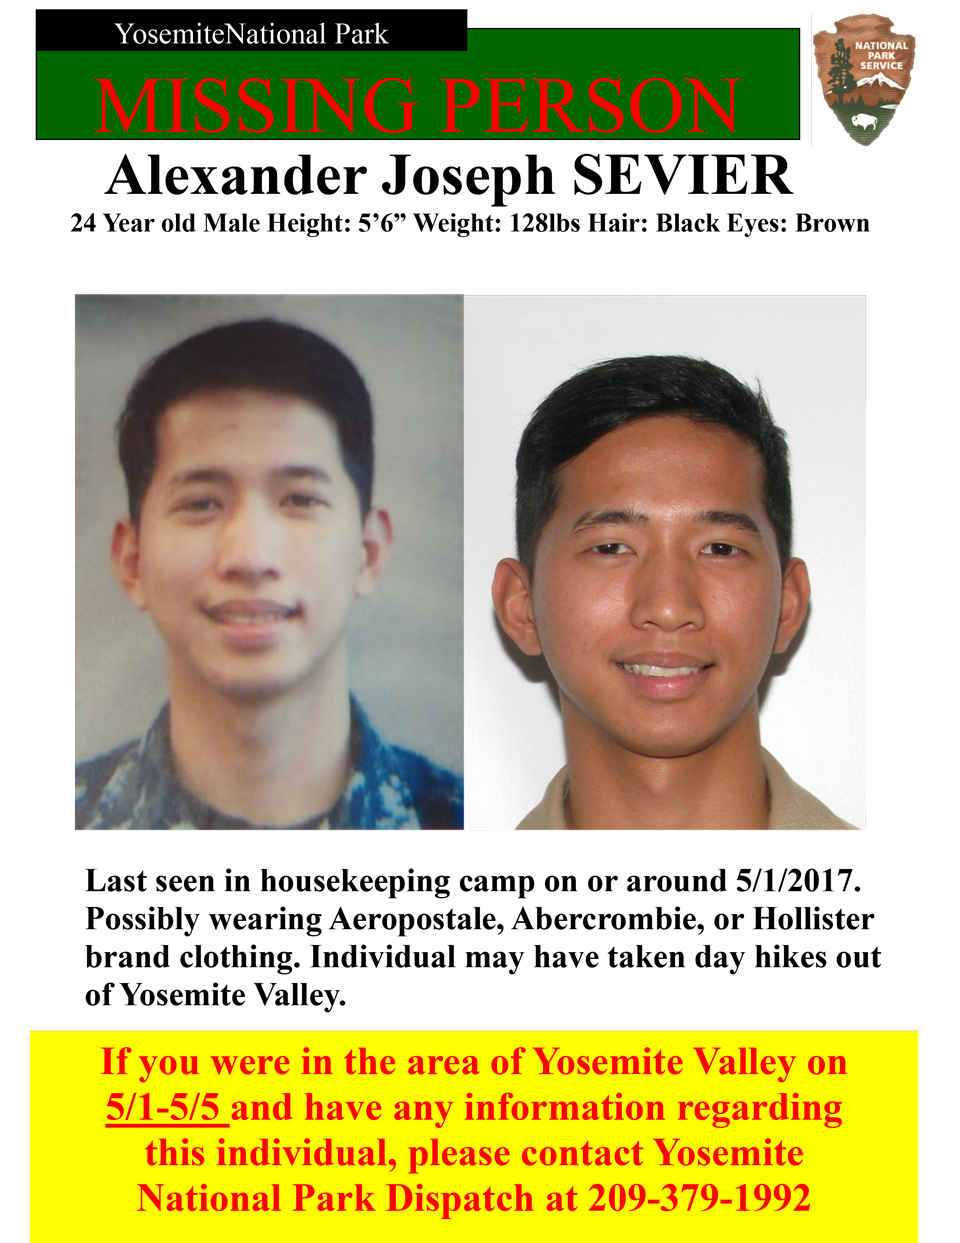 yosemite national park missing person sevier alexander